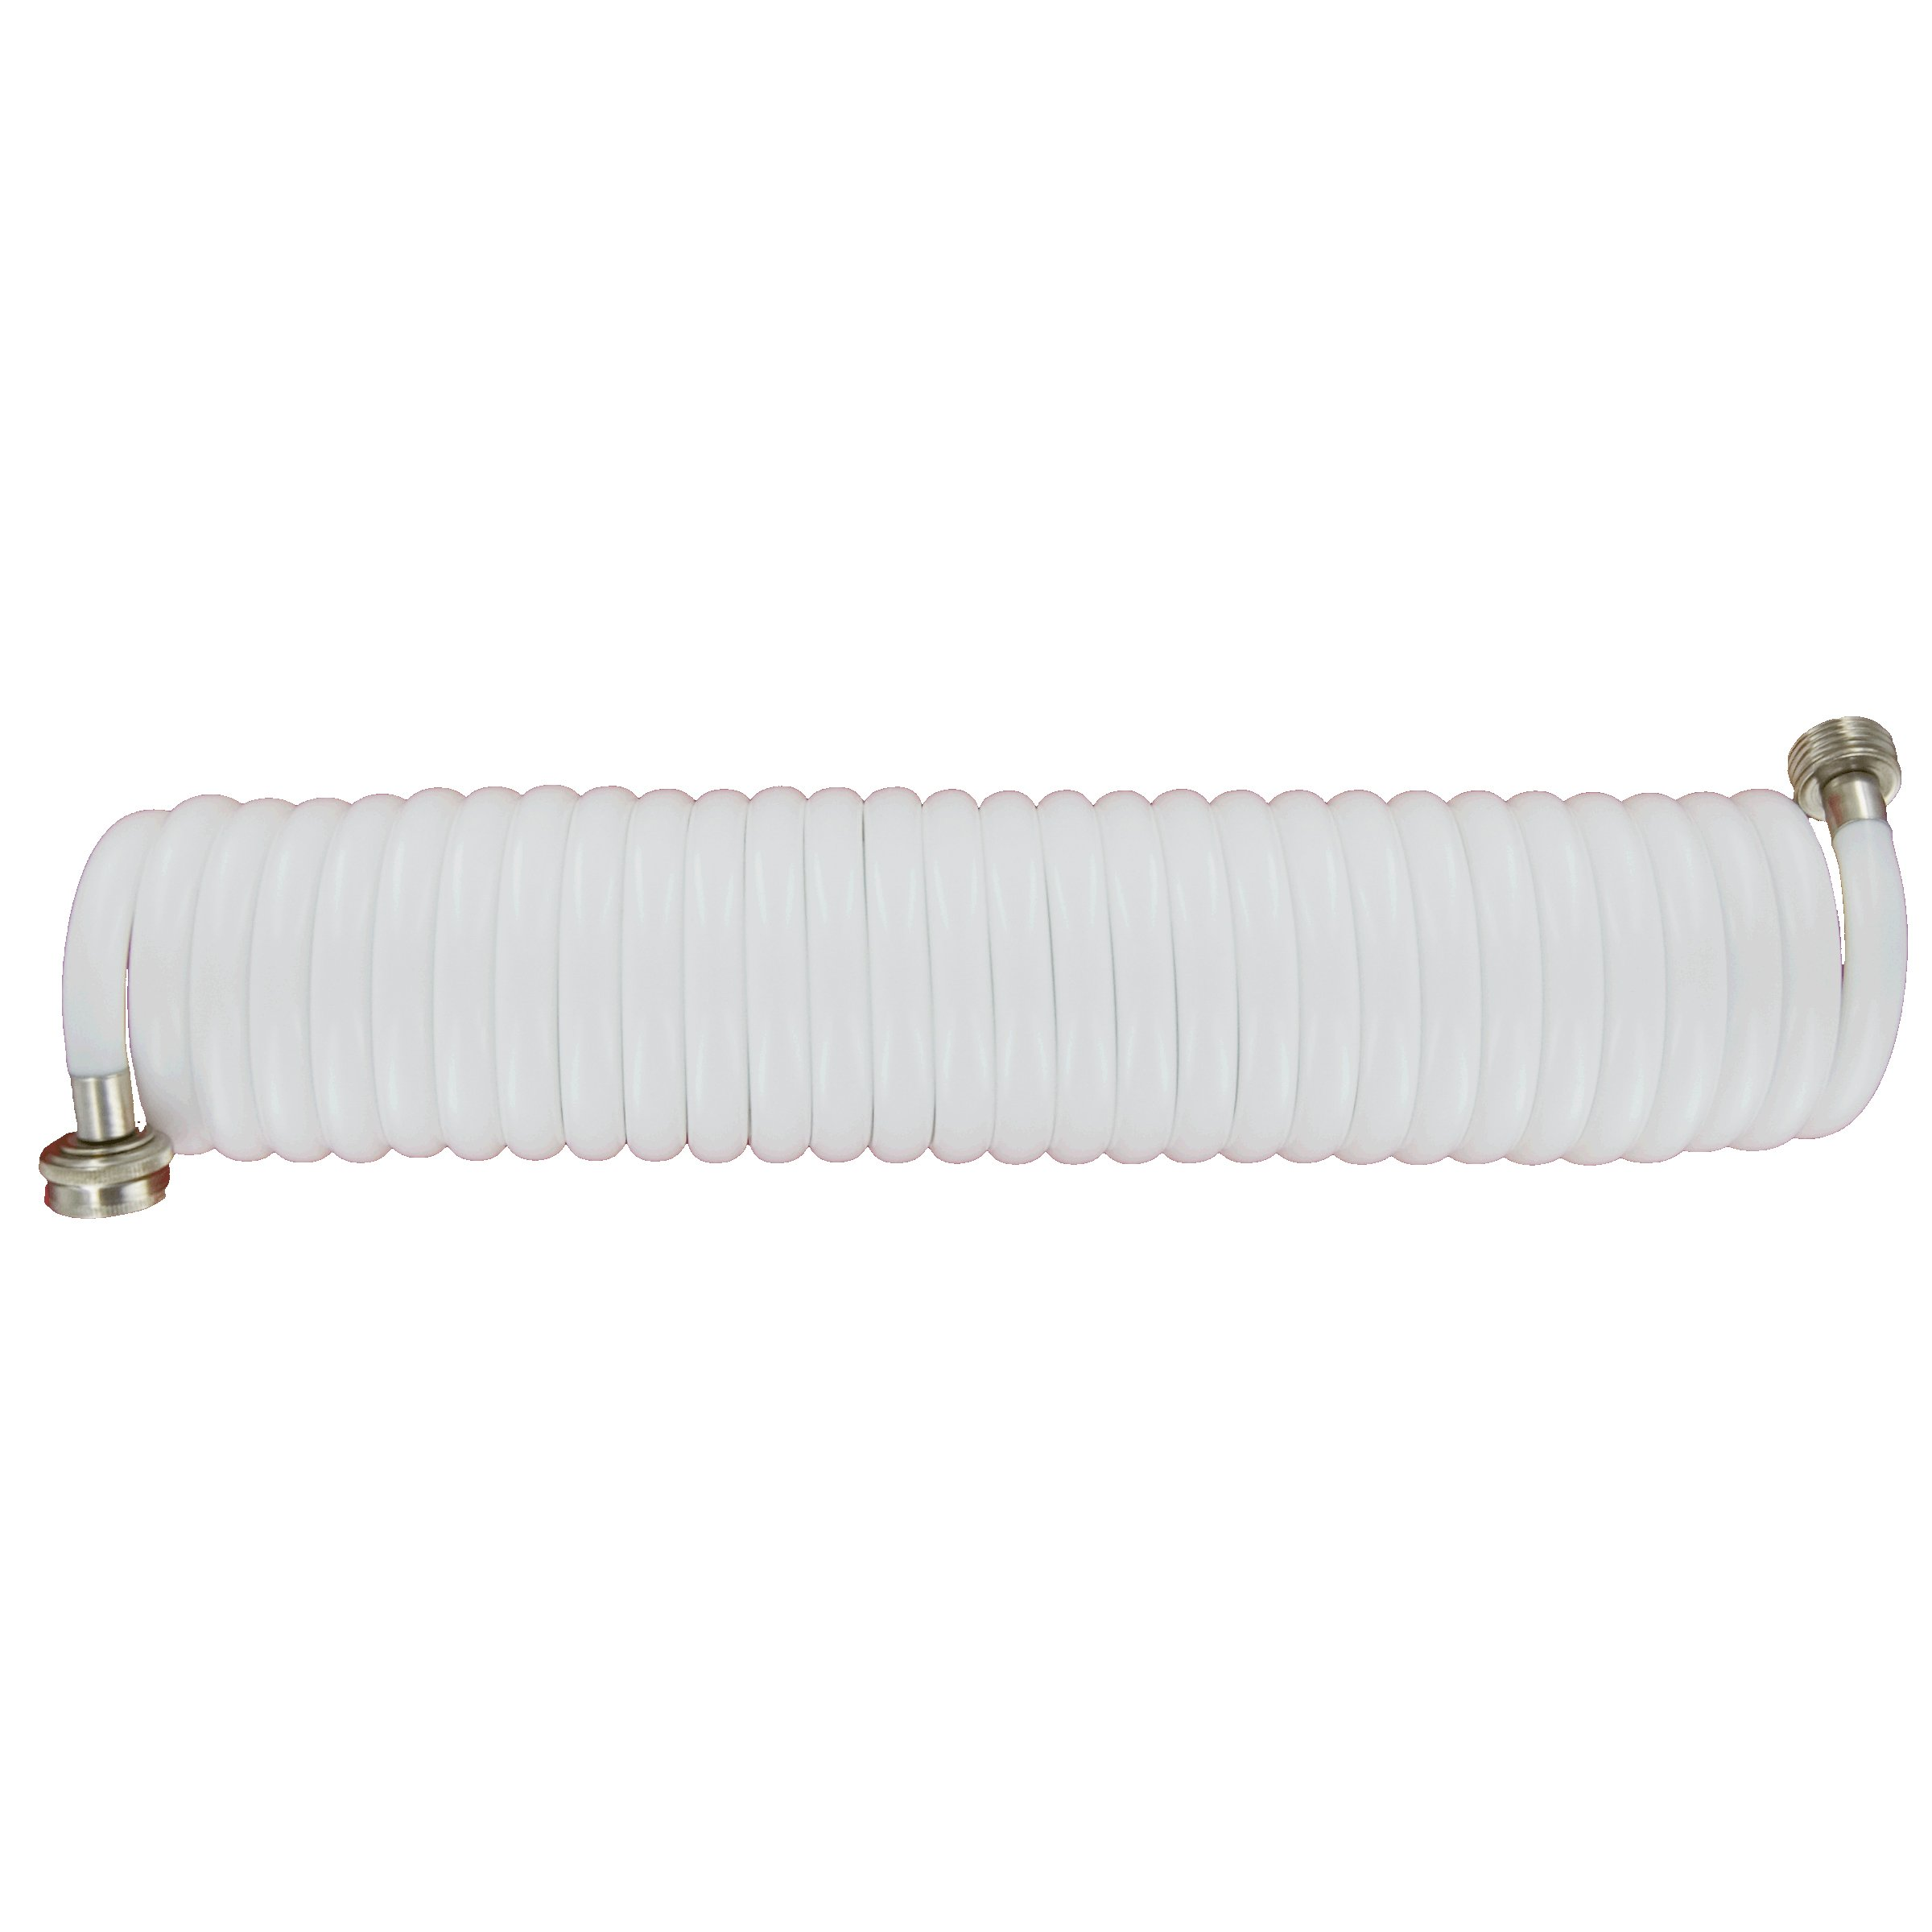 Plastair SpringHose PUWE625B9-M-11S-AMZ Light EVA Lead Free Drinking Water Safe Marine/RV Recoil Hose, White, 3/8-Inch by 25-Foot by Plastair